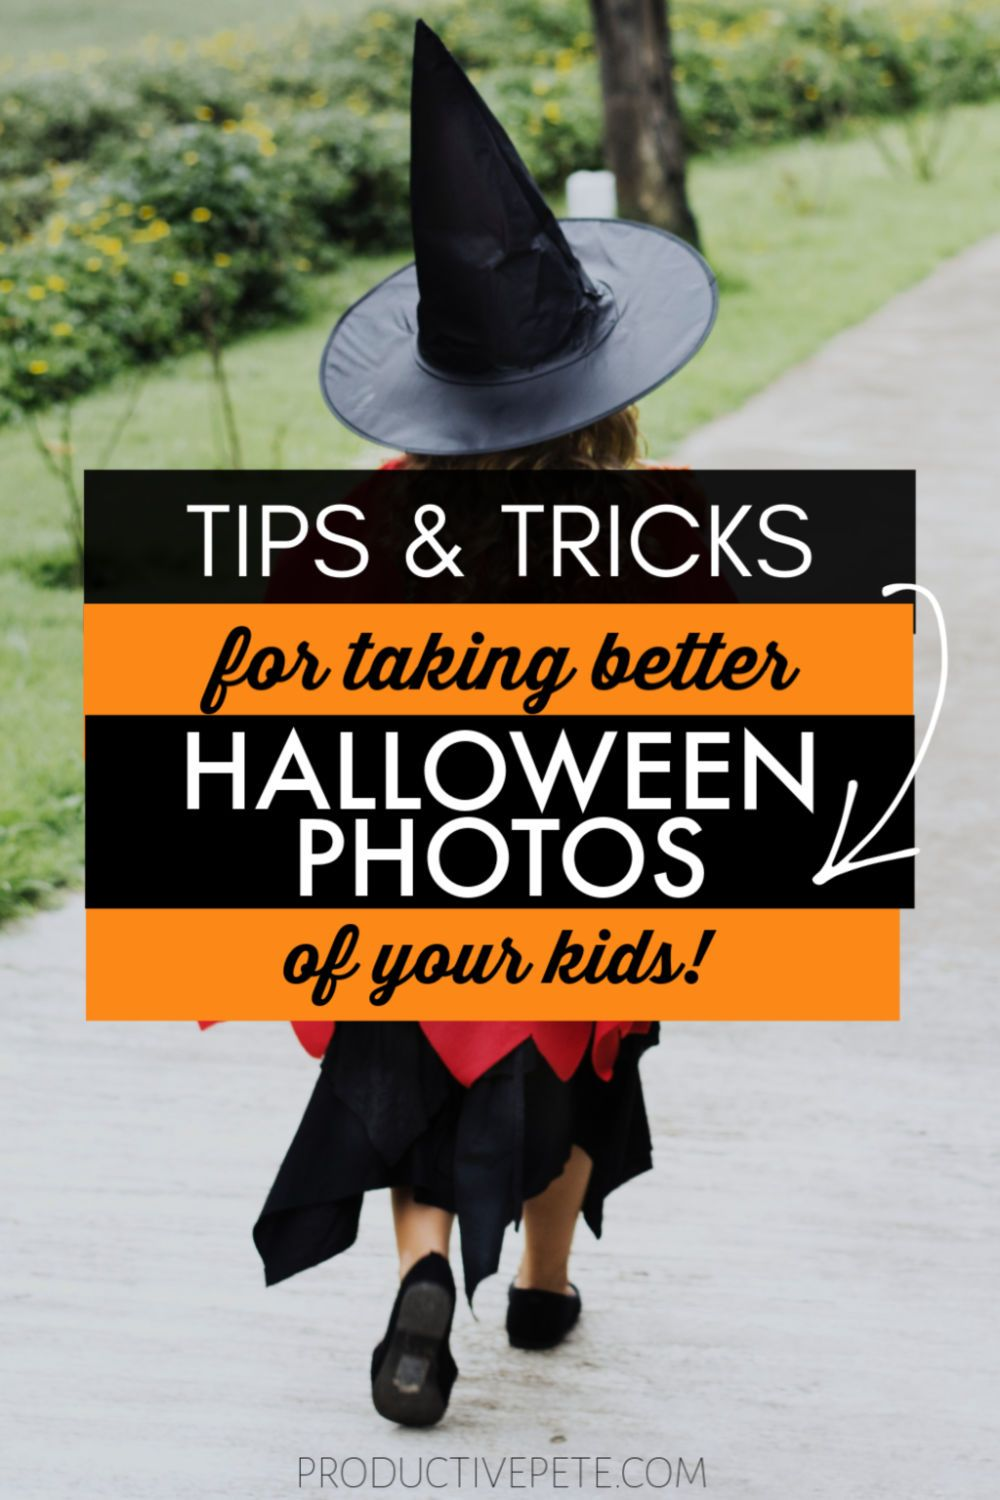 Try these easy photography tips and tricks to capture priceless Halloween memories. Ideas and hacks to avoid blurry, dark photos on the spookiest night of the year. #halloween #photography #momhacks #photographytips #momswithcameras